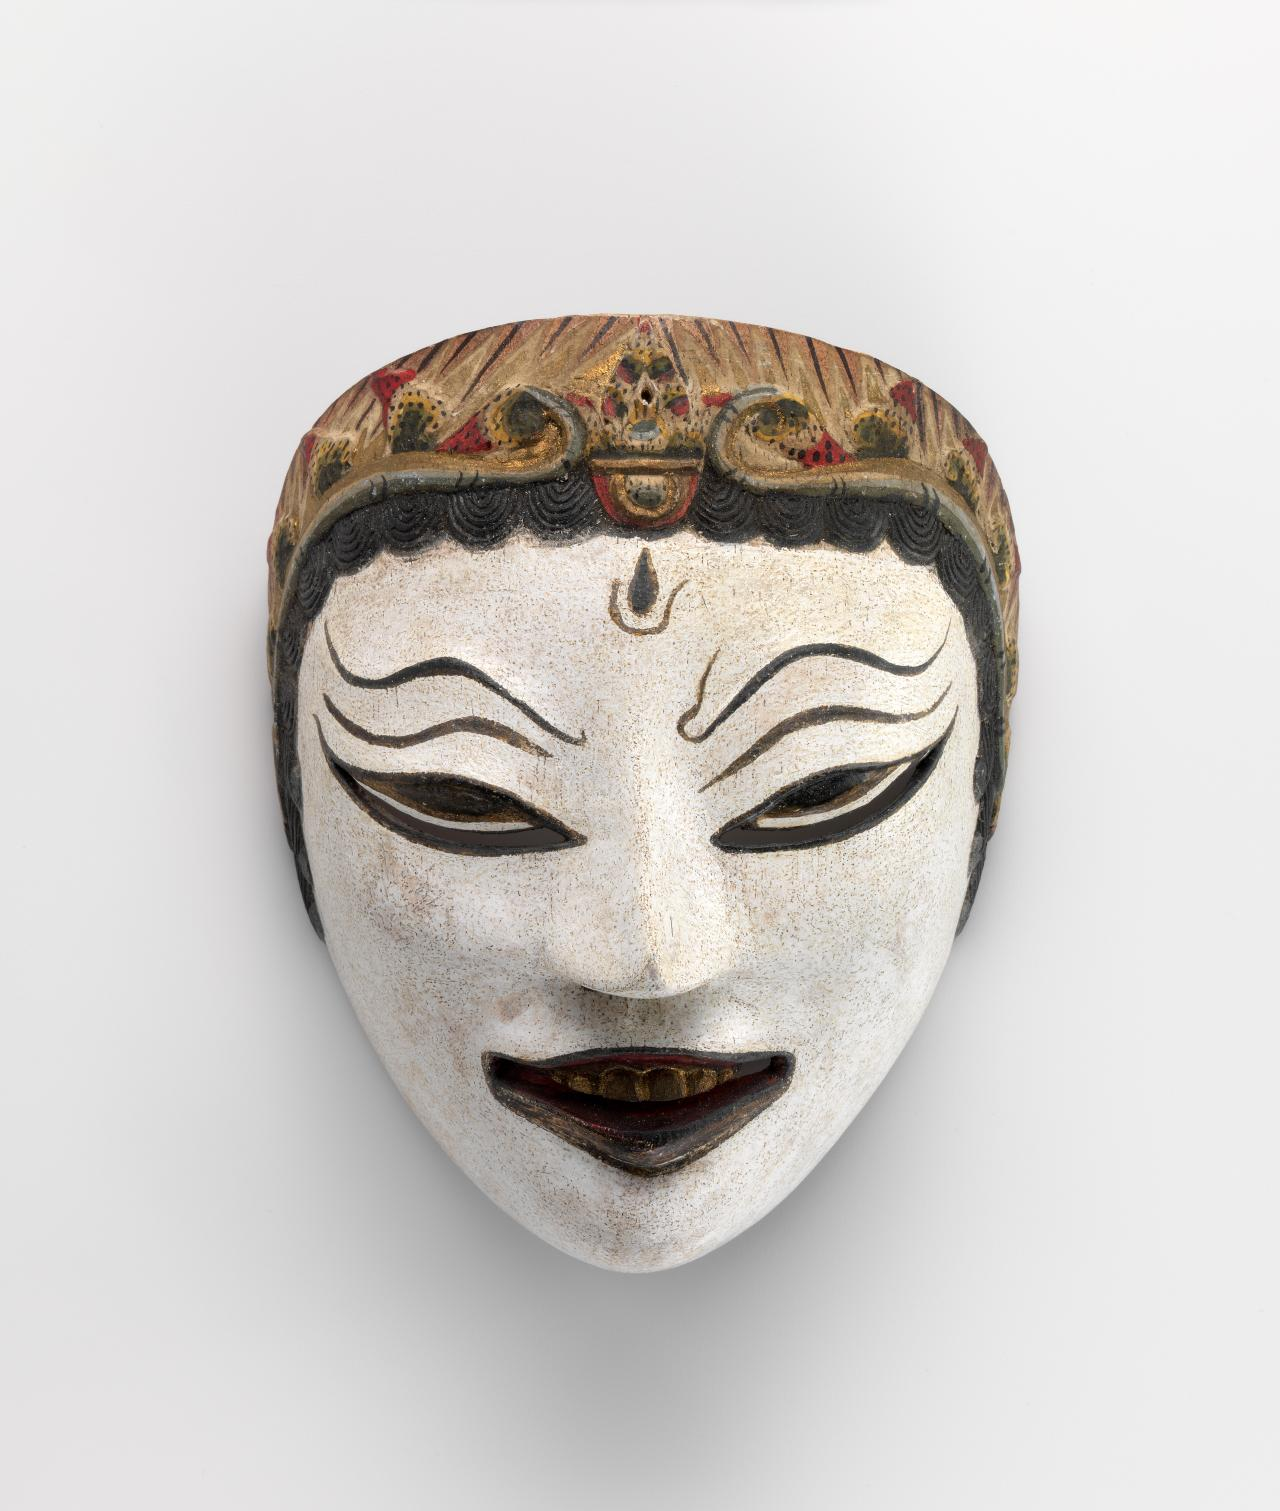 Mask (Topeng) for Raden Panji, Prince of Janggala Kingdom